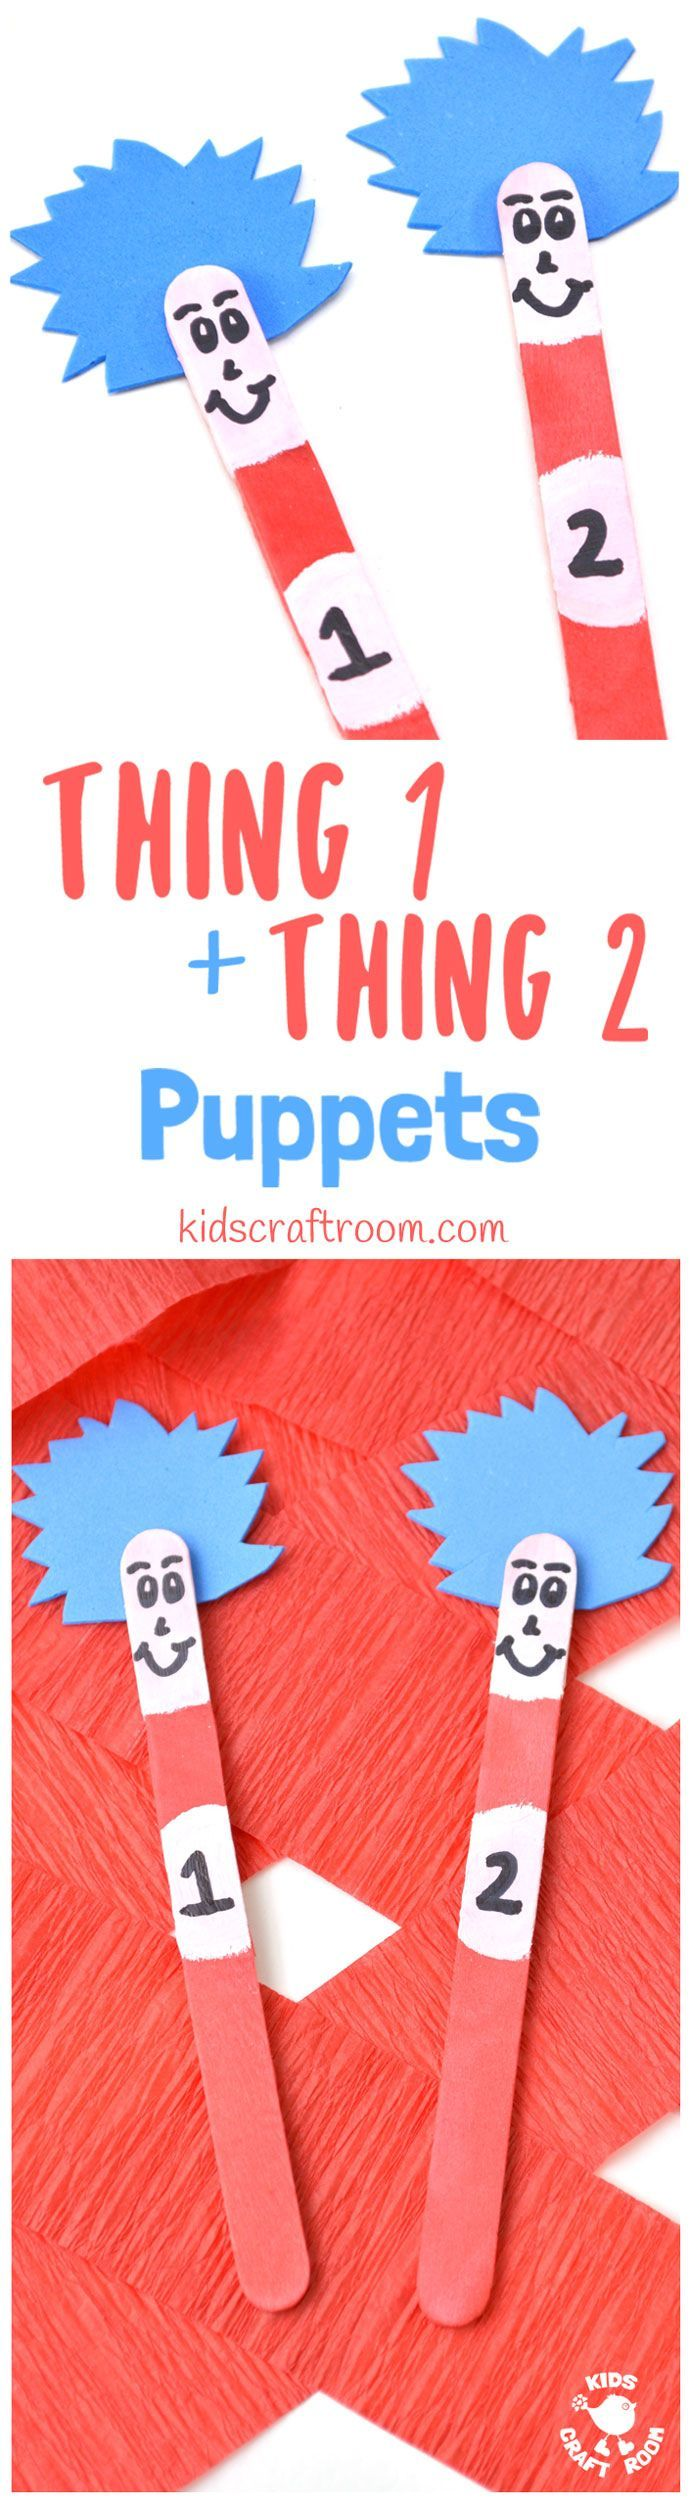 "THING 1 and THING 2 PUPPETS are super simple to make and great fun for all Dr Seuss ""The Cat In The Hat"" fans, big and small! Use them to bring the story to life as you read with your kids or to inspire their imaginative play. These popsicle stick puppets are super fun!"